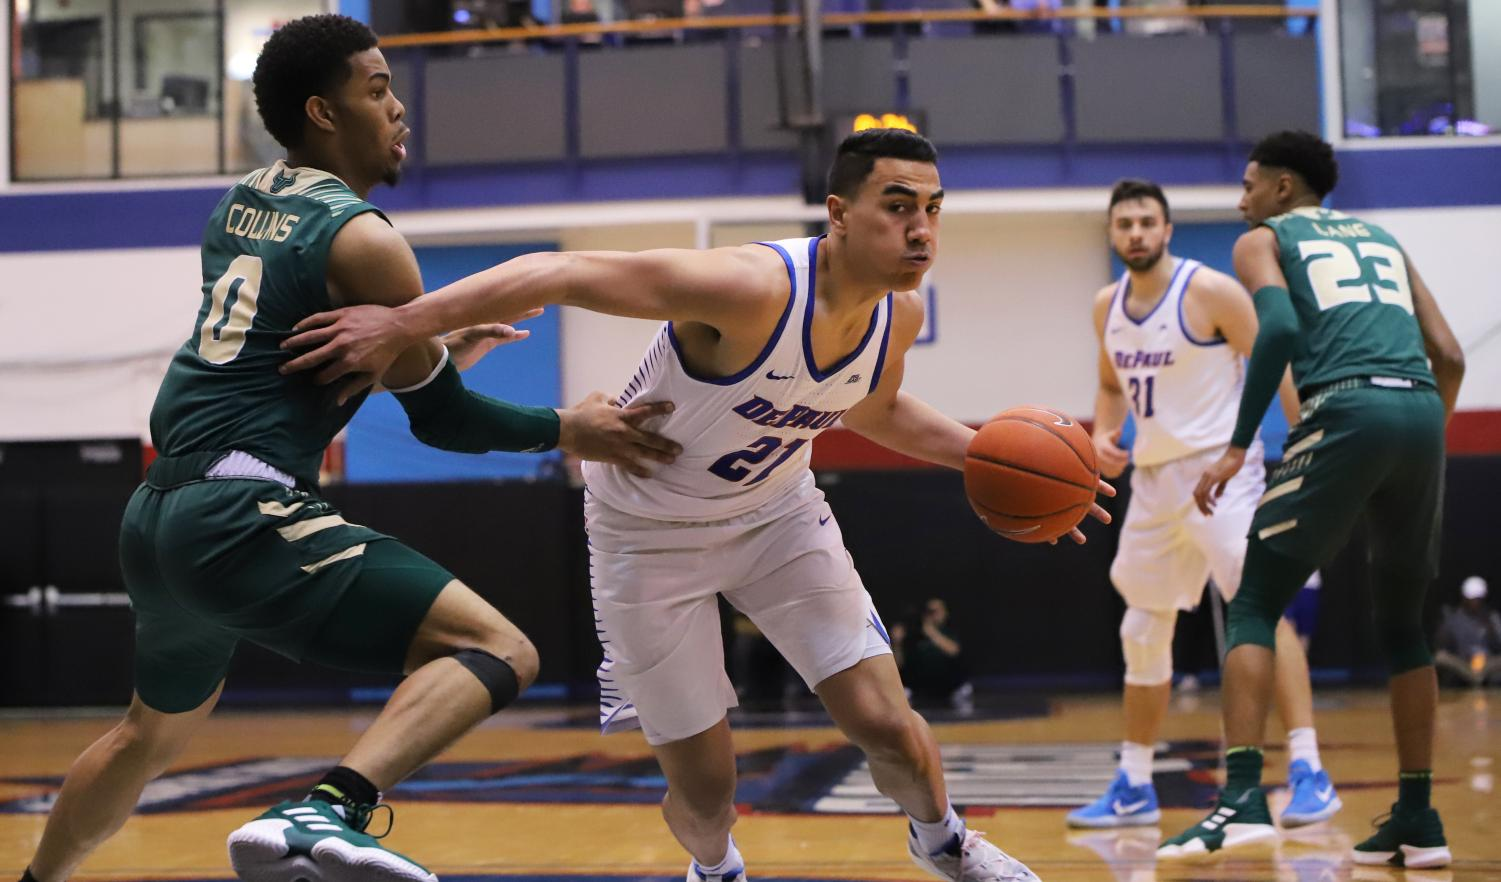 DePaul freshman guard Flynn Cameron drives past USF's David Collins during game two of the CBI championship series. (Alexa Sandler | The DePaulia)